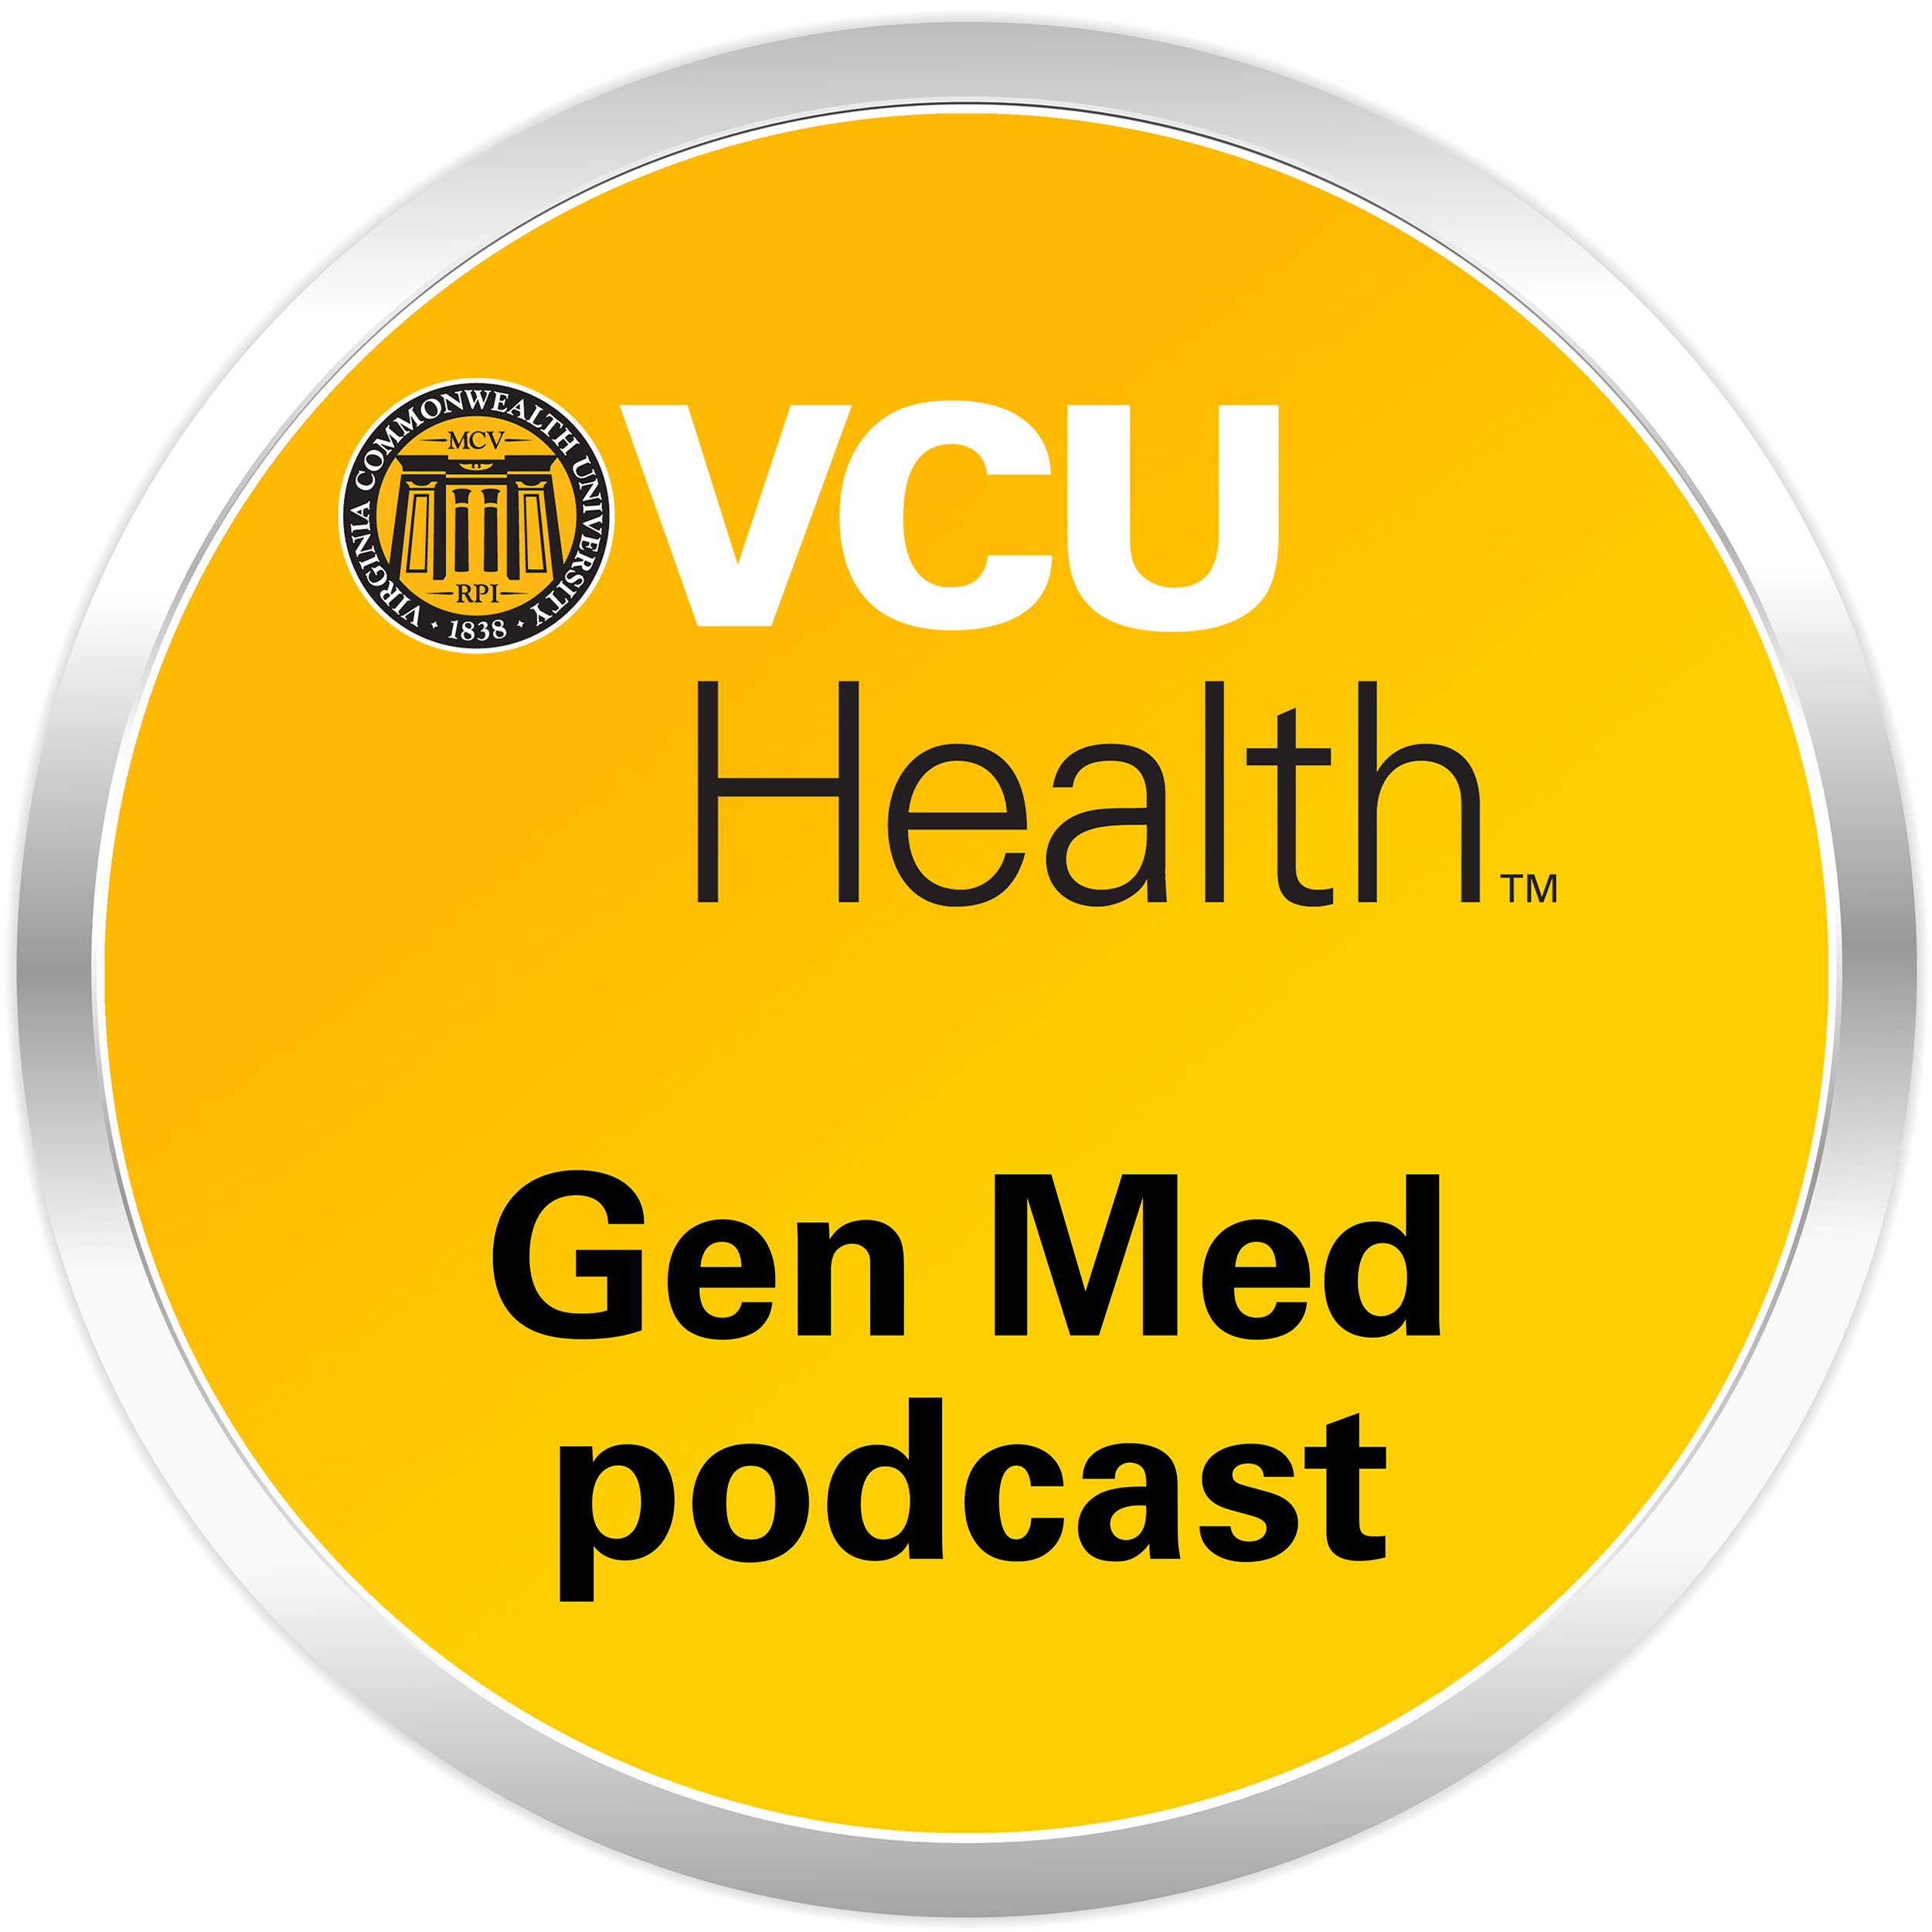 VCU Health GenMed Podcast